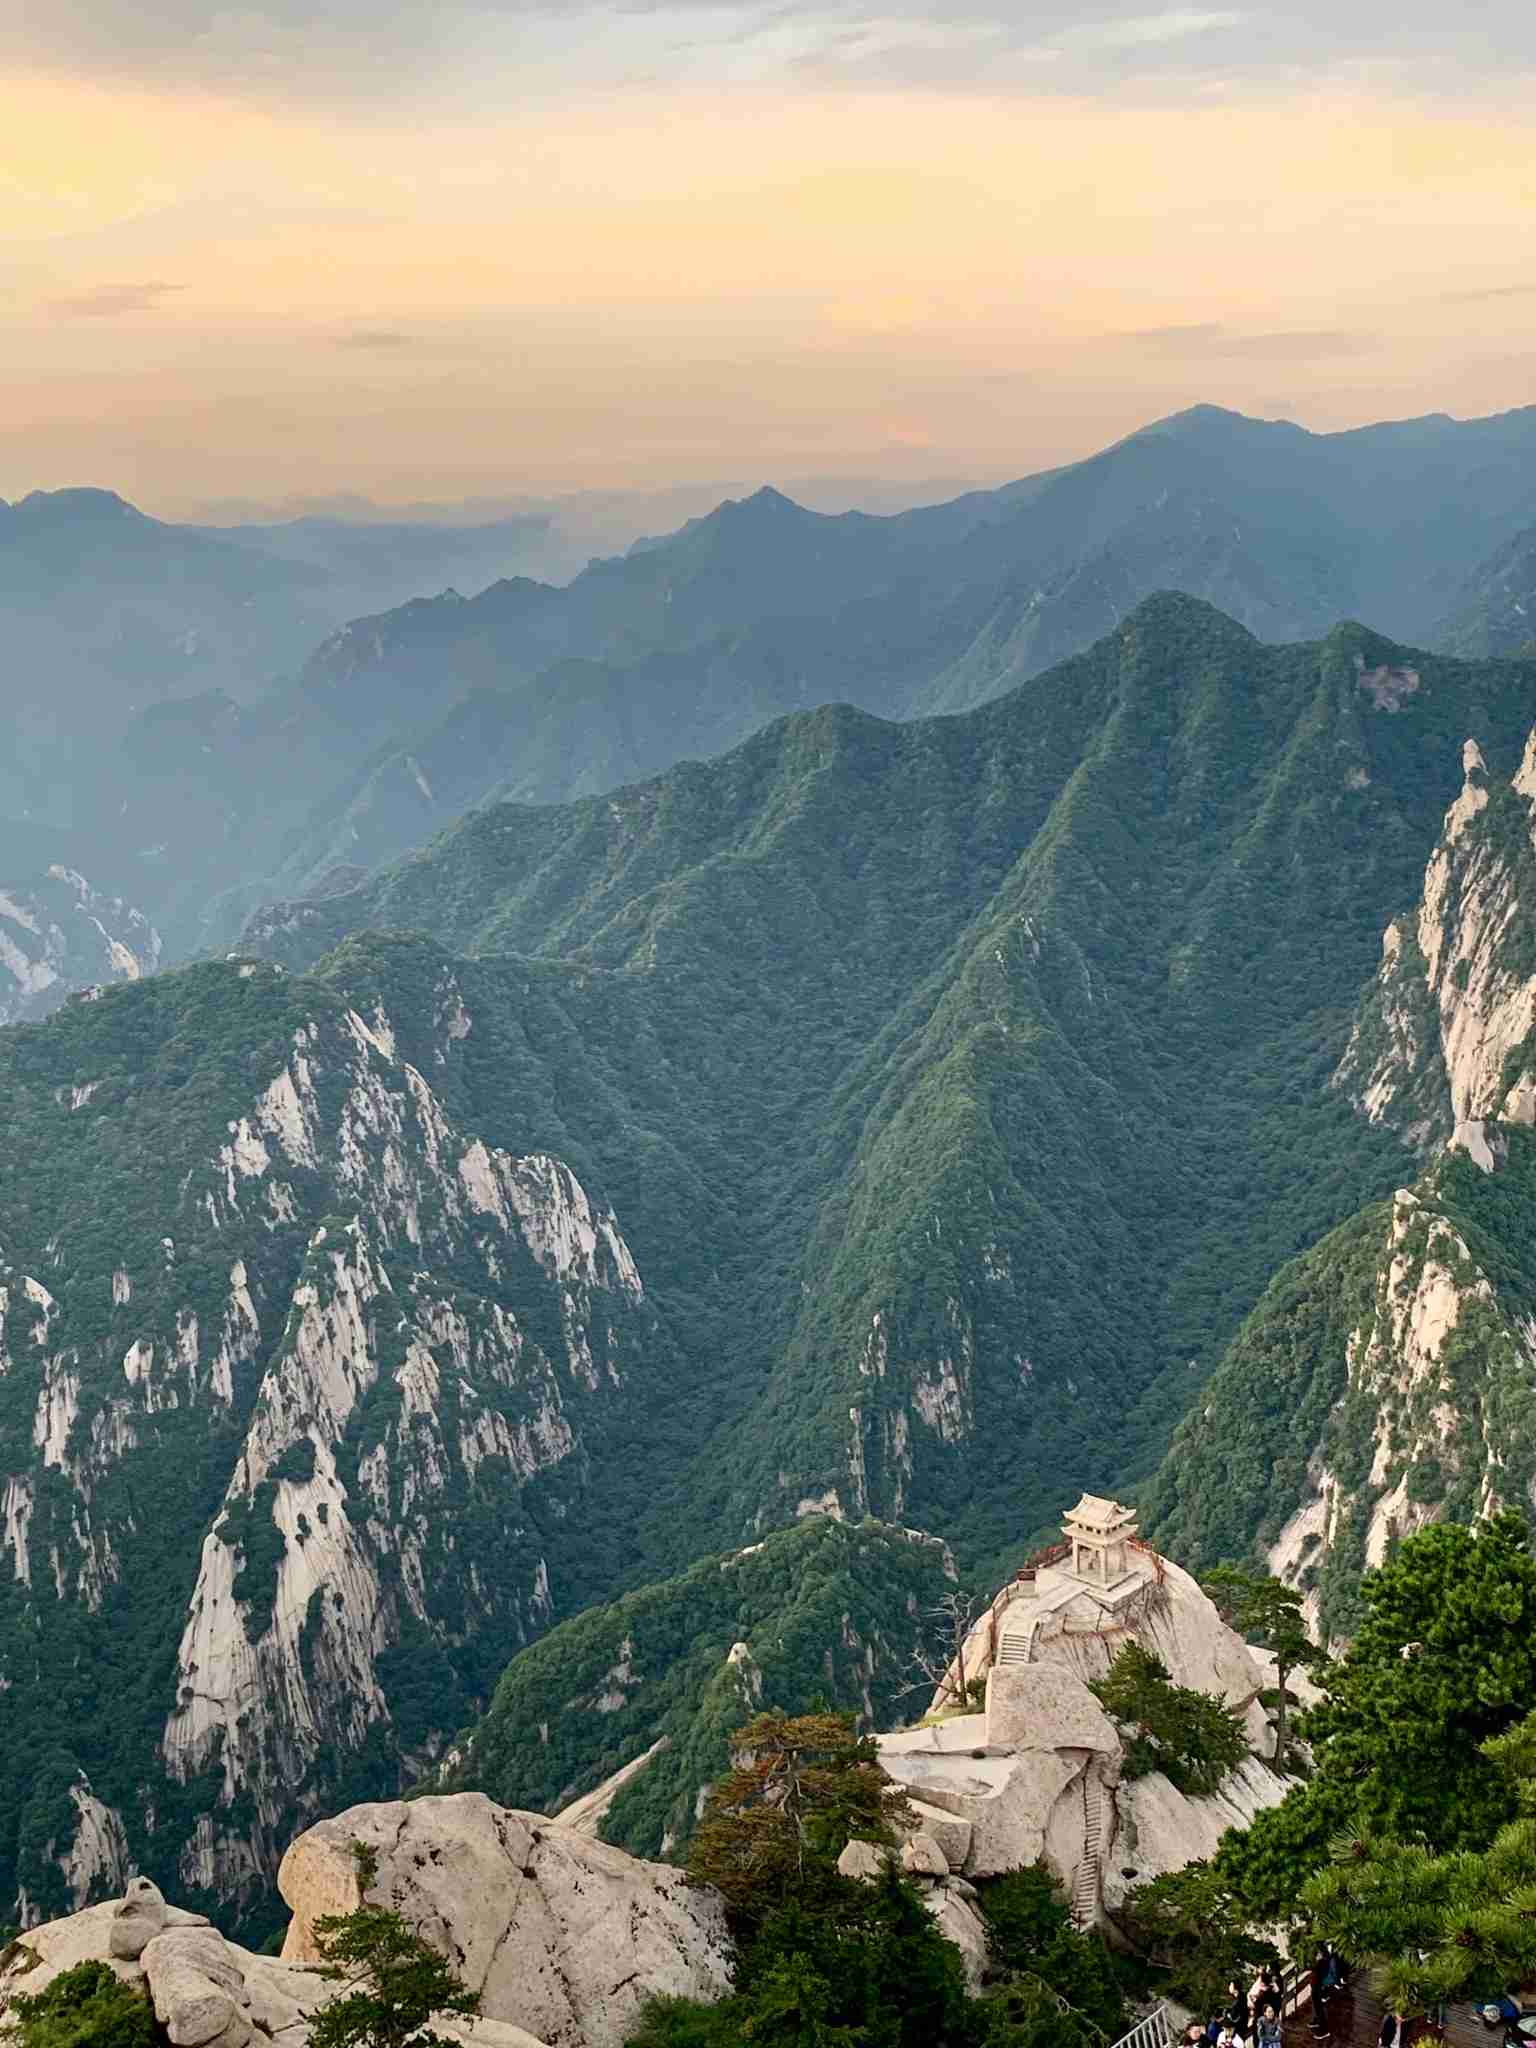 Mount Huashan. Photo by Ethan Steinberg/TPG